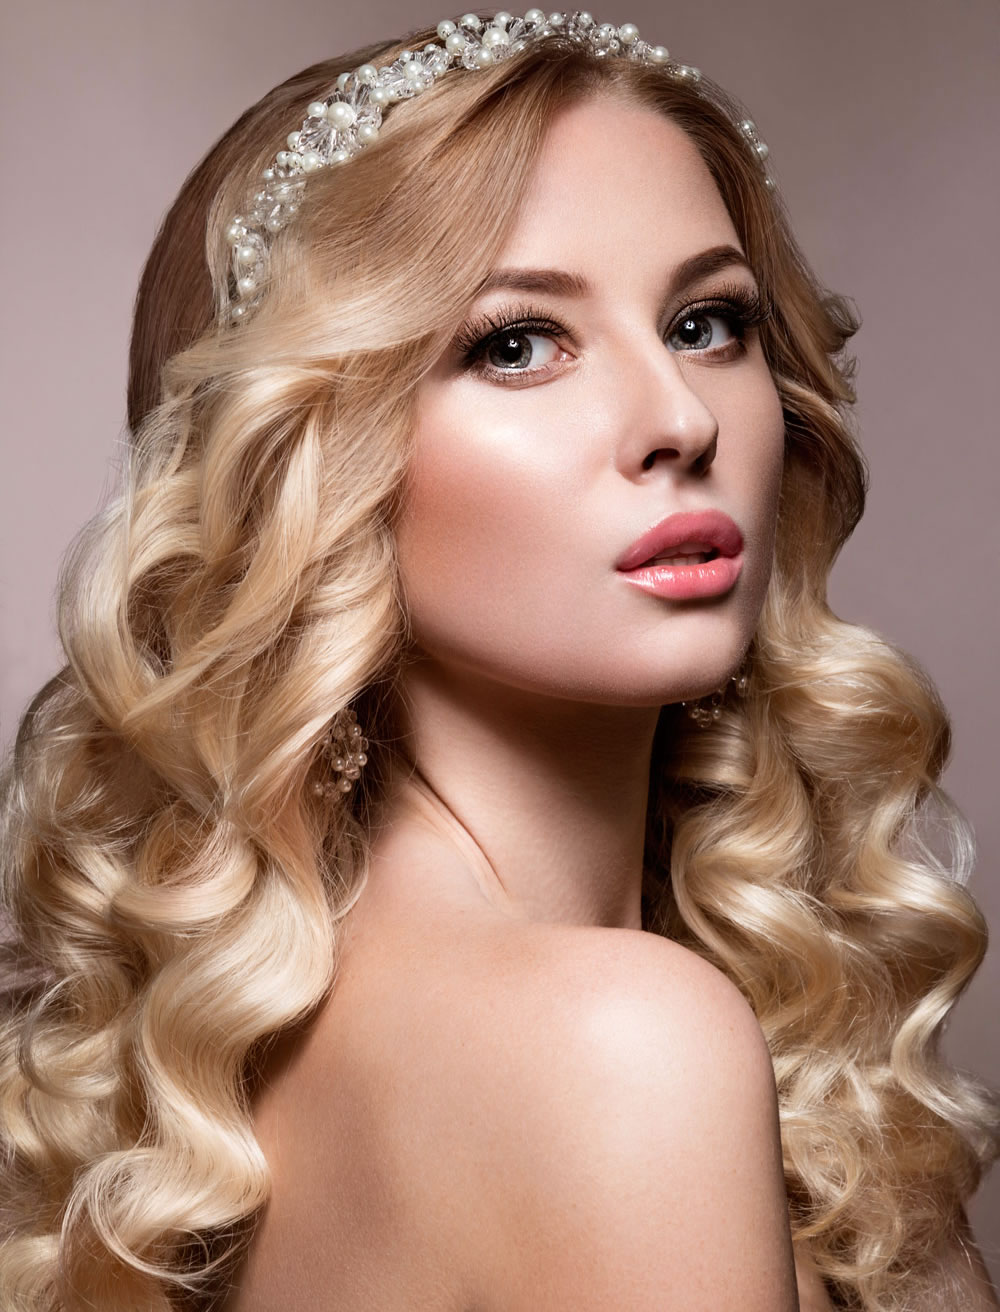 Adorable-bridal hairstyles ideas 2018-2019-will amaze you! 4